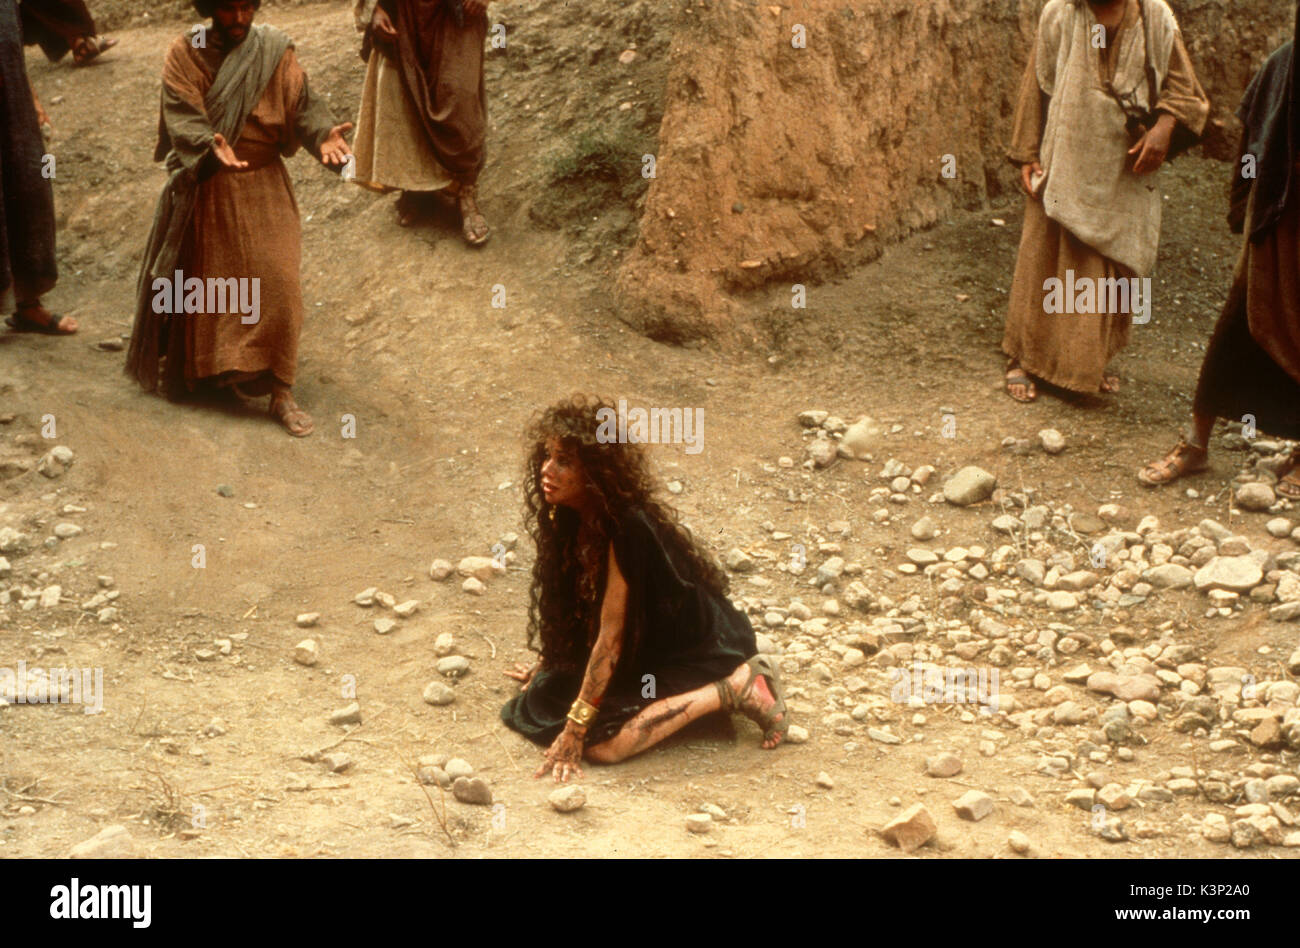 THE LAST TEMPTATION OF CHRIST [US / CAN 1988] BARBARA HERSHEY as Mary Magdalene     Date: 1988 - Stock Image